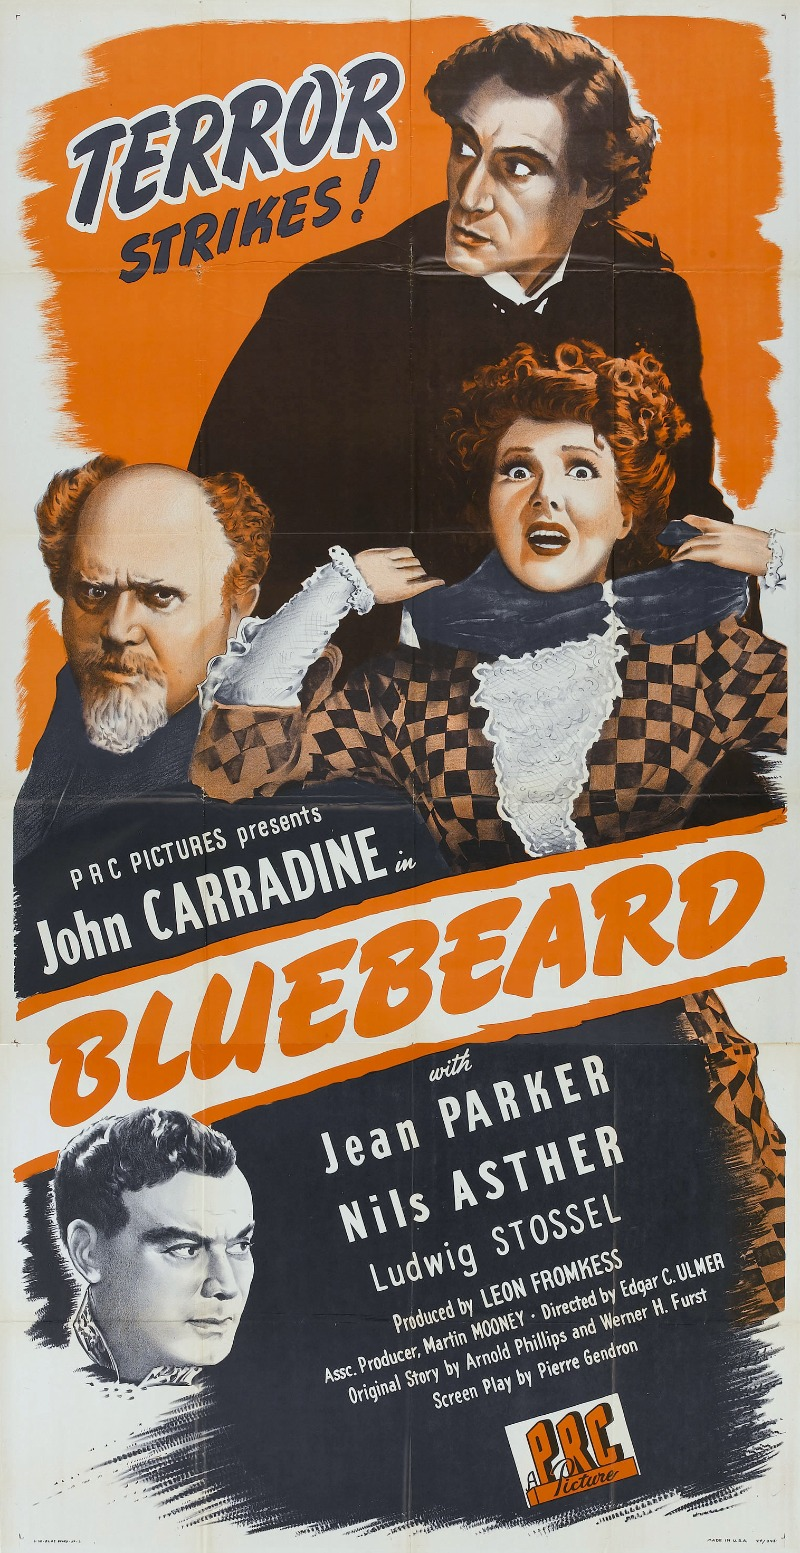 bluebeard poster 2 blog